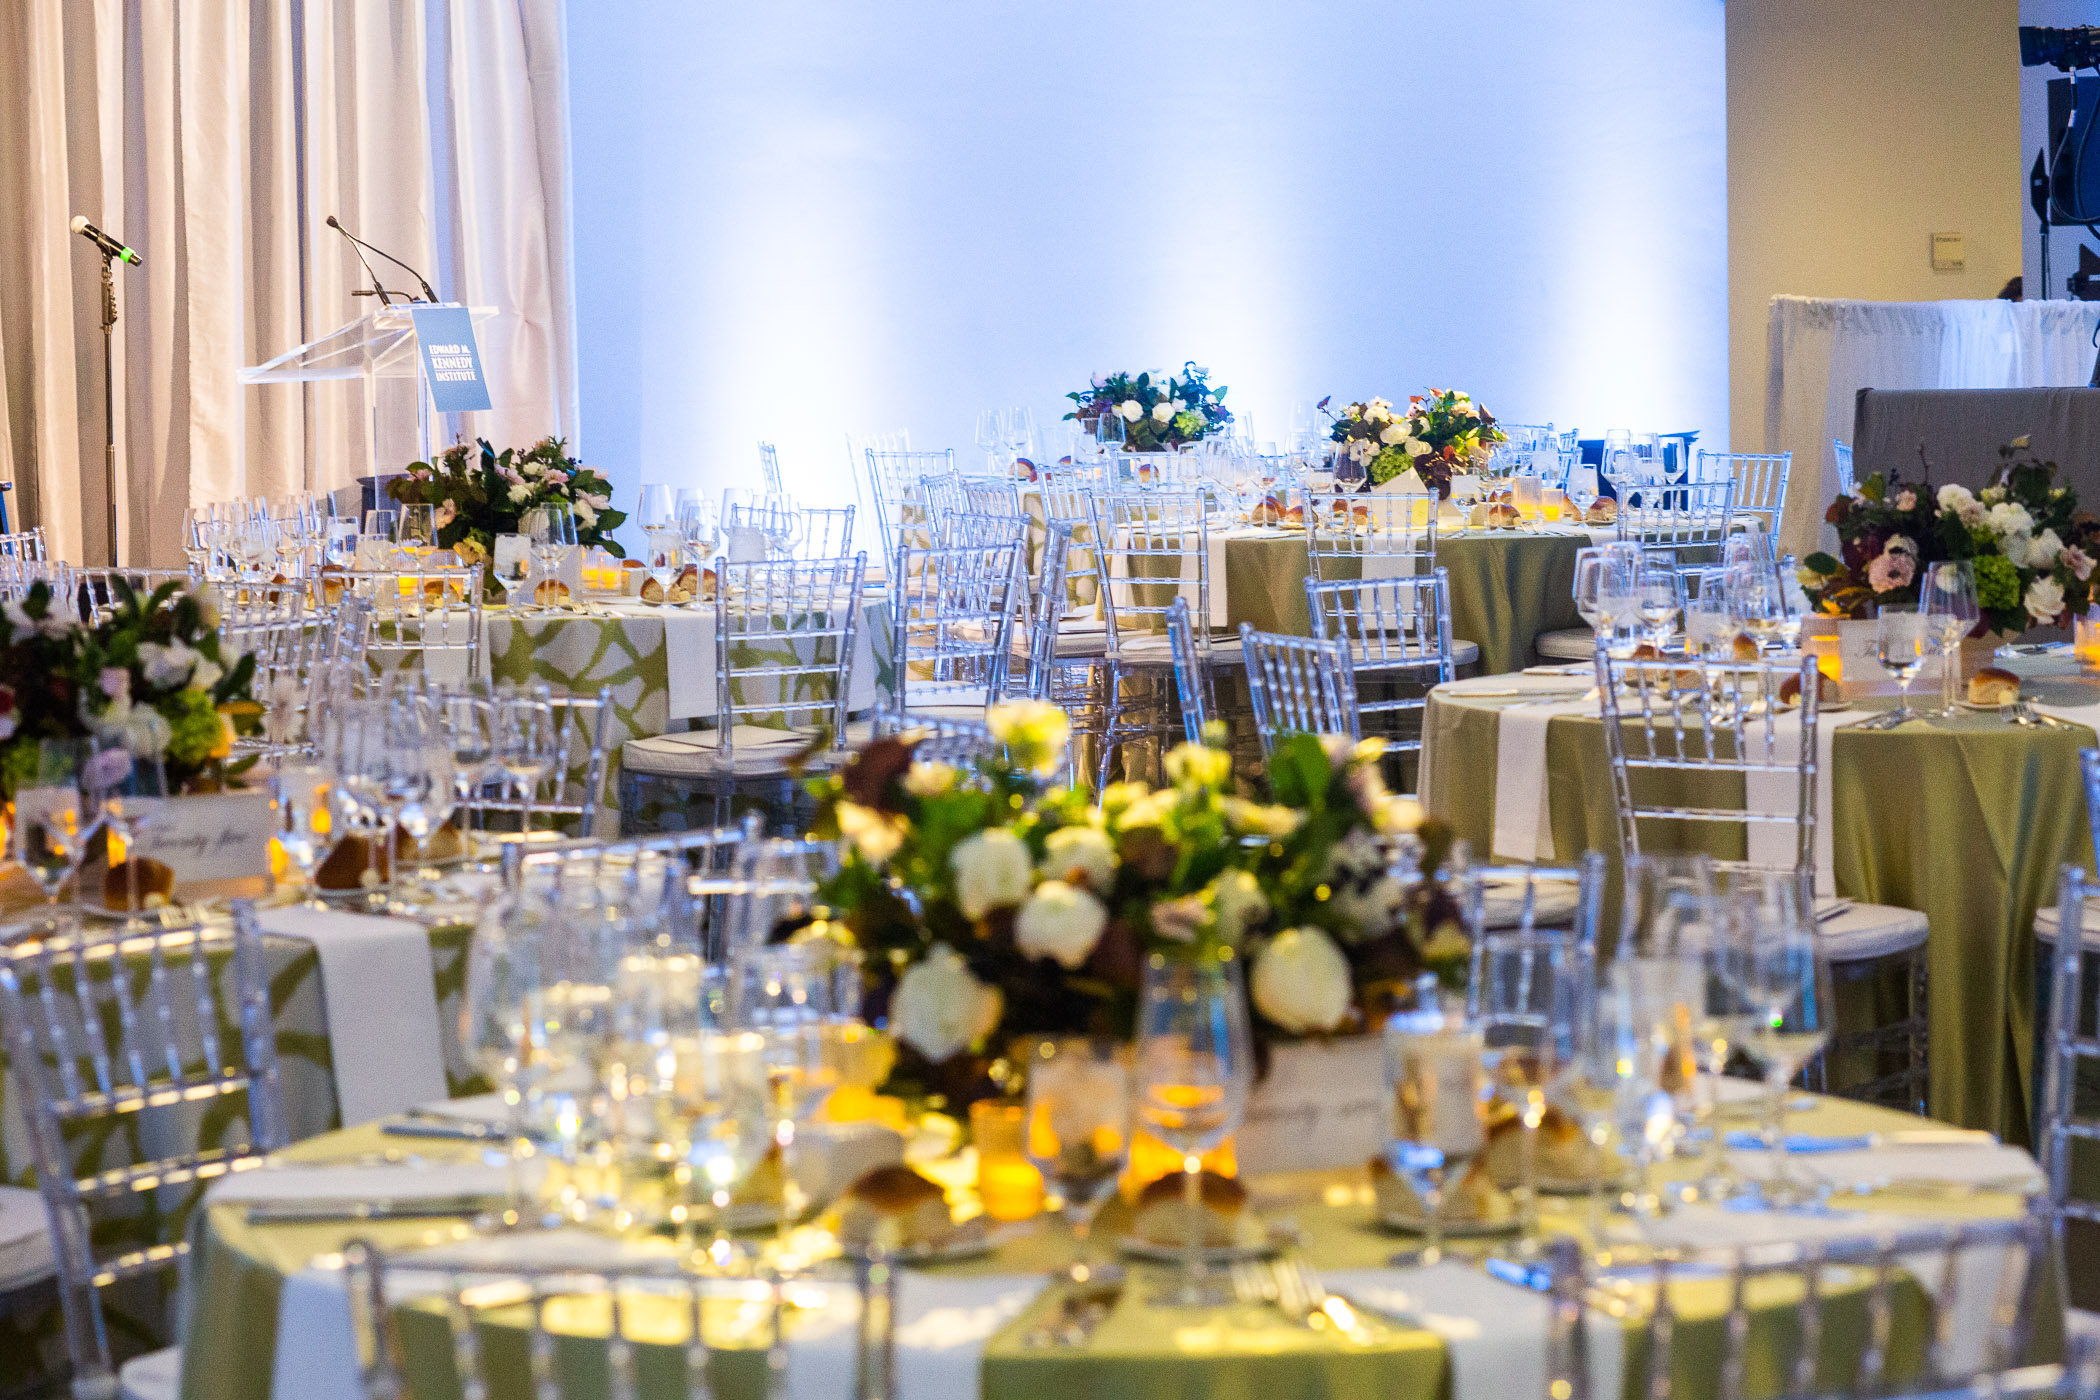 Tables with Flowers in the Surround